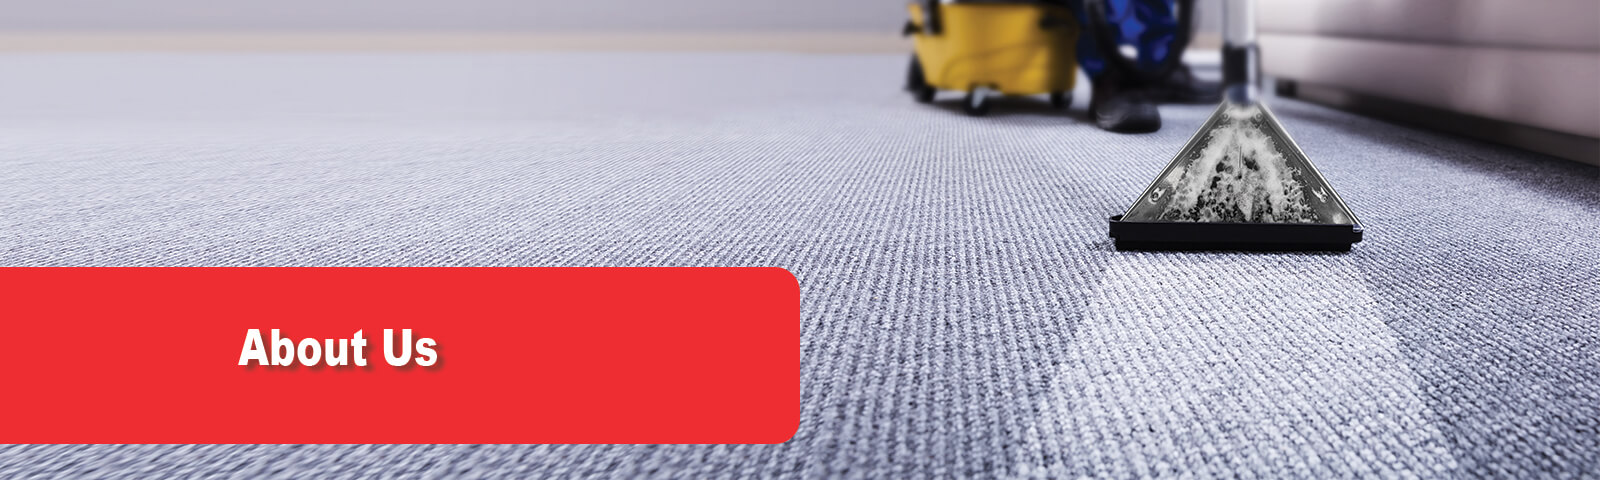 carpet cleaners australia